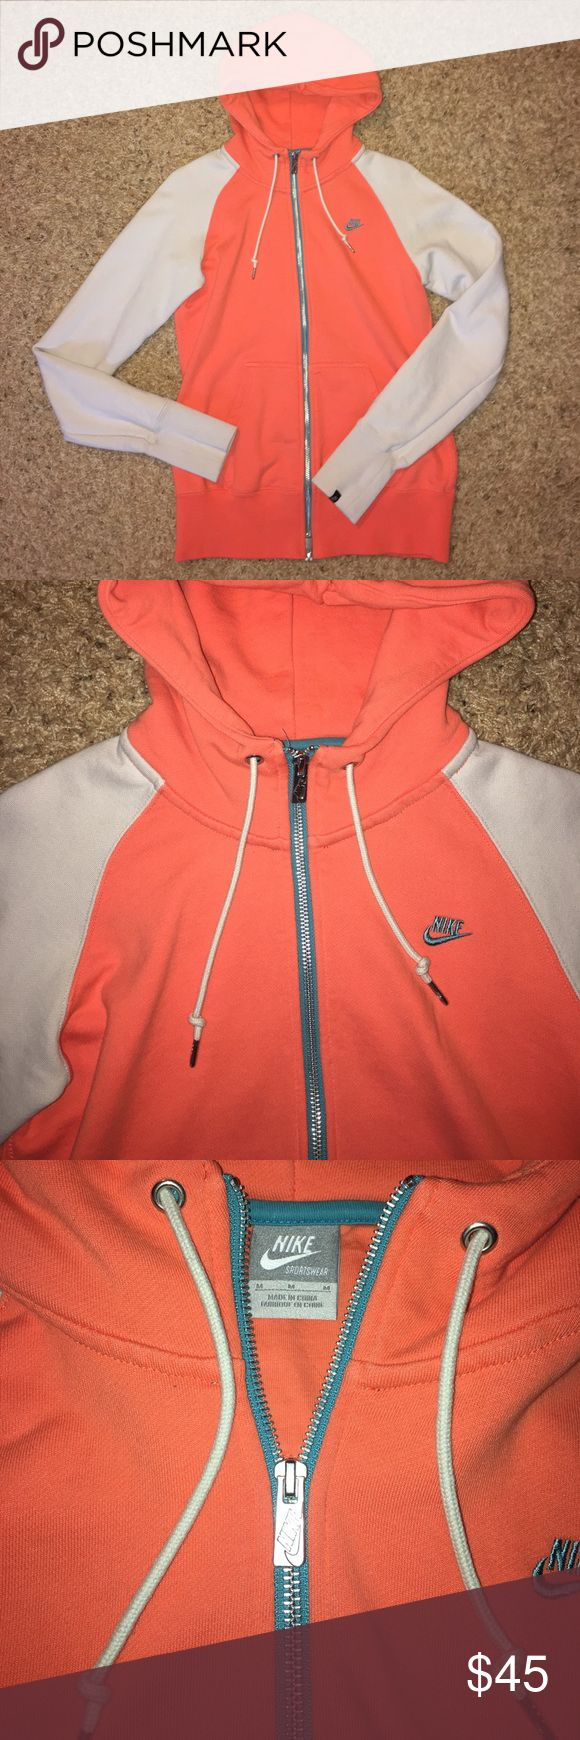 Color block Nike zip up hoodie Orange/coral with cream sleeves. Blue and silver zipper . Thick neck. Towel material on inside. NEVER WORN! Nike Tops Sweatshirts & Hoodies